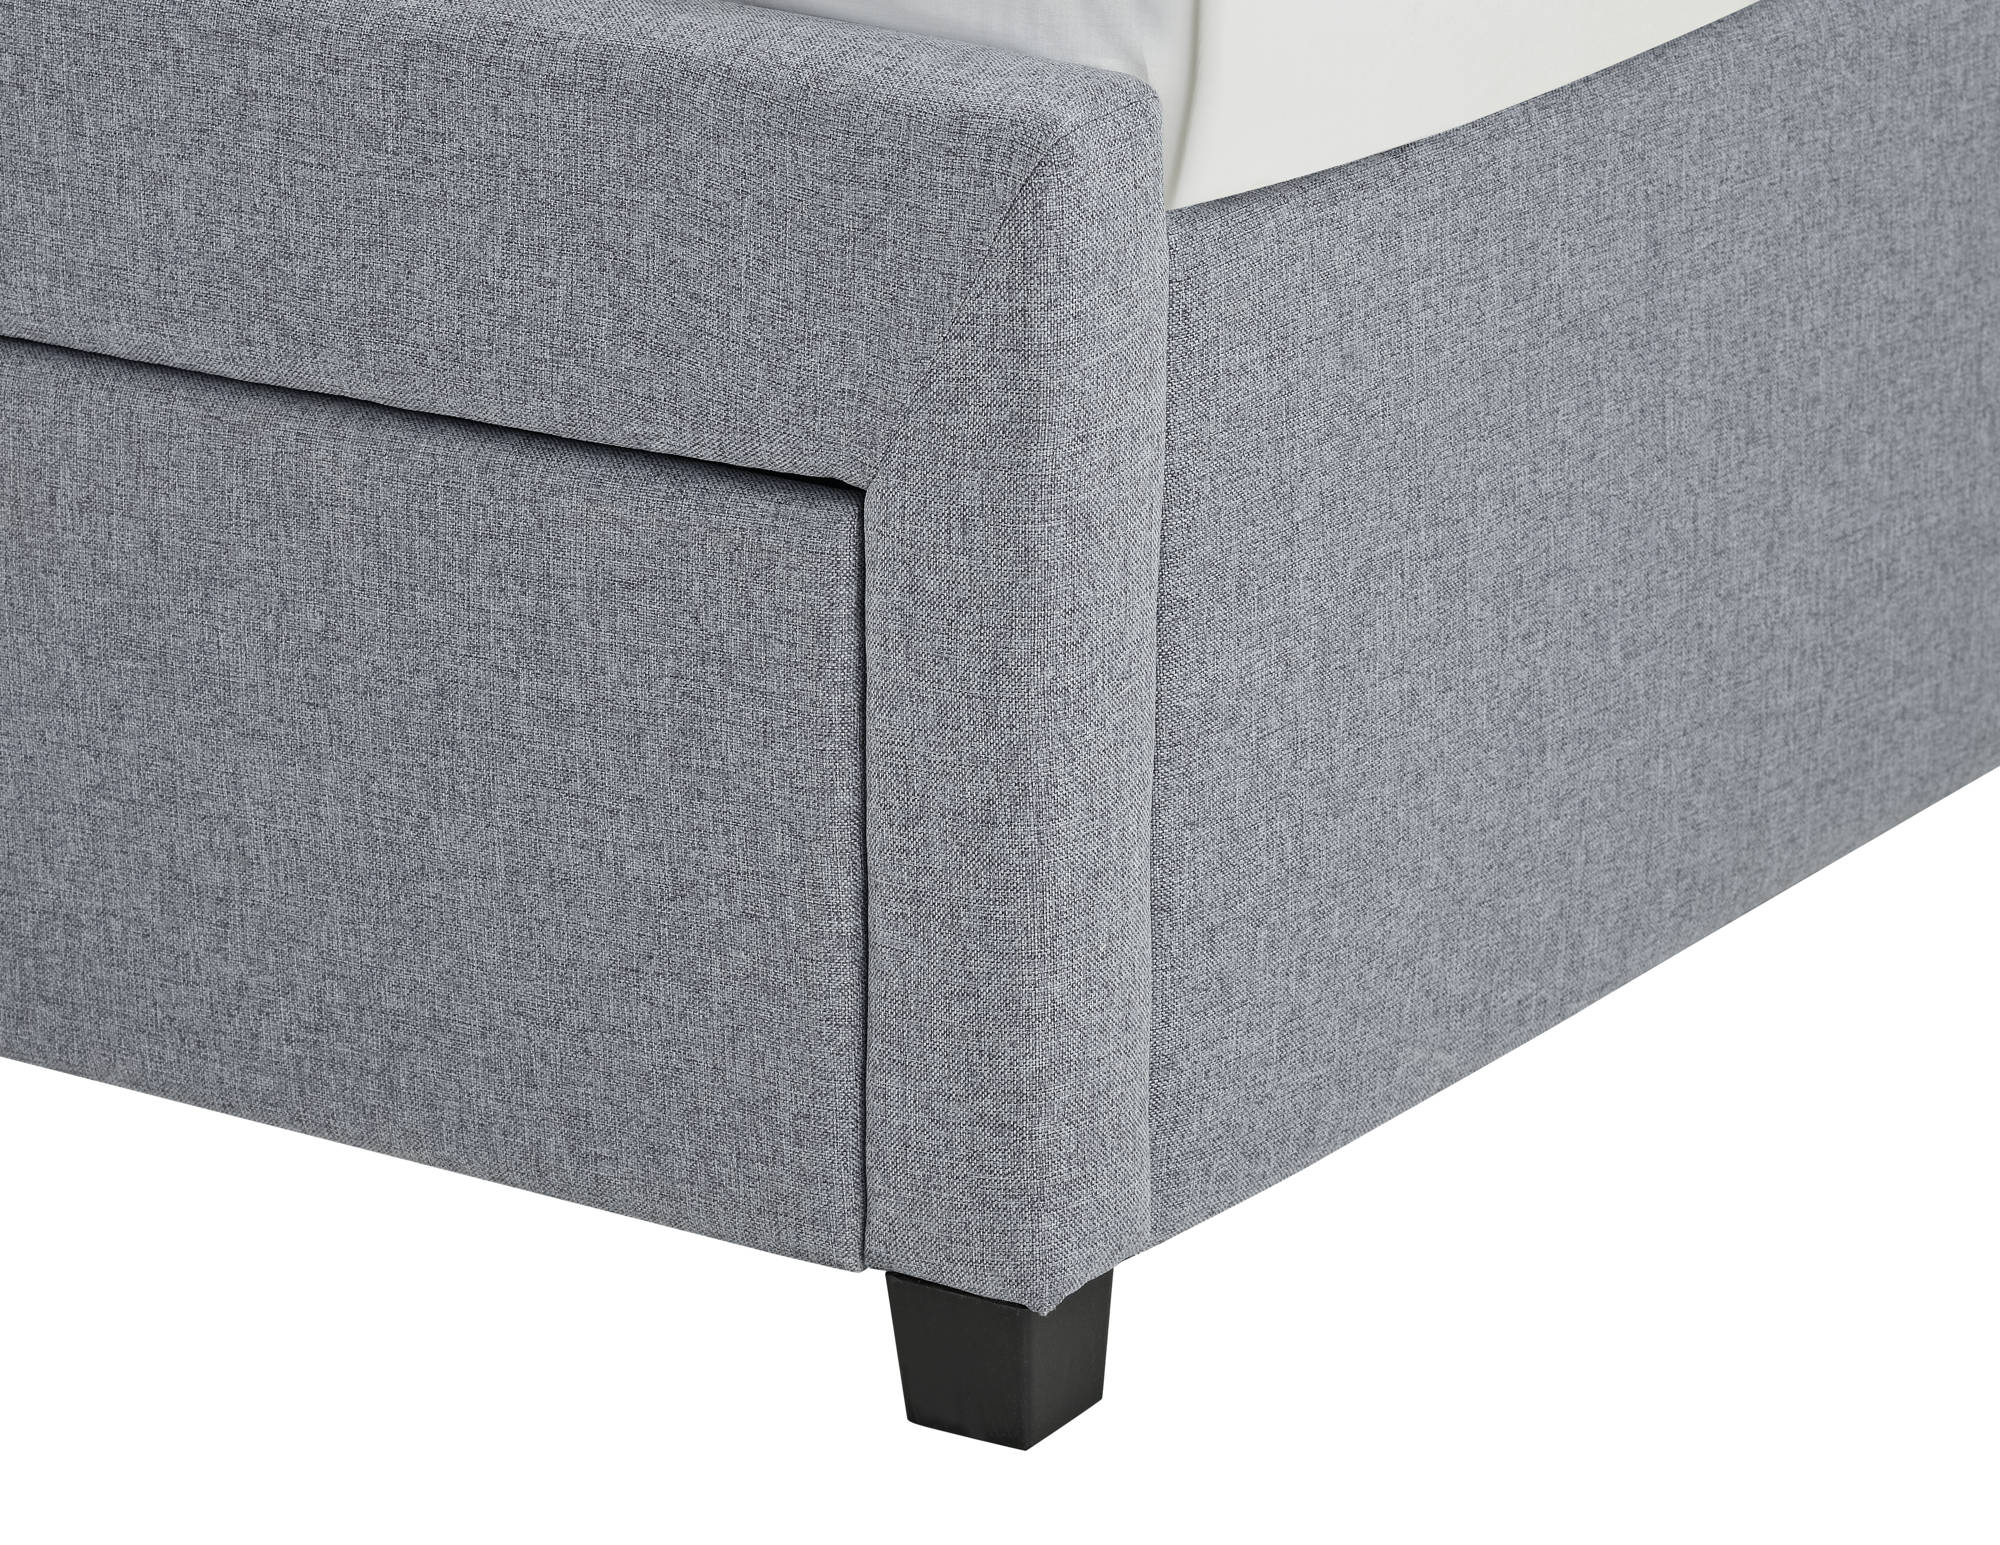 Charlton Double Bed in Grey - Ezzo